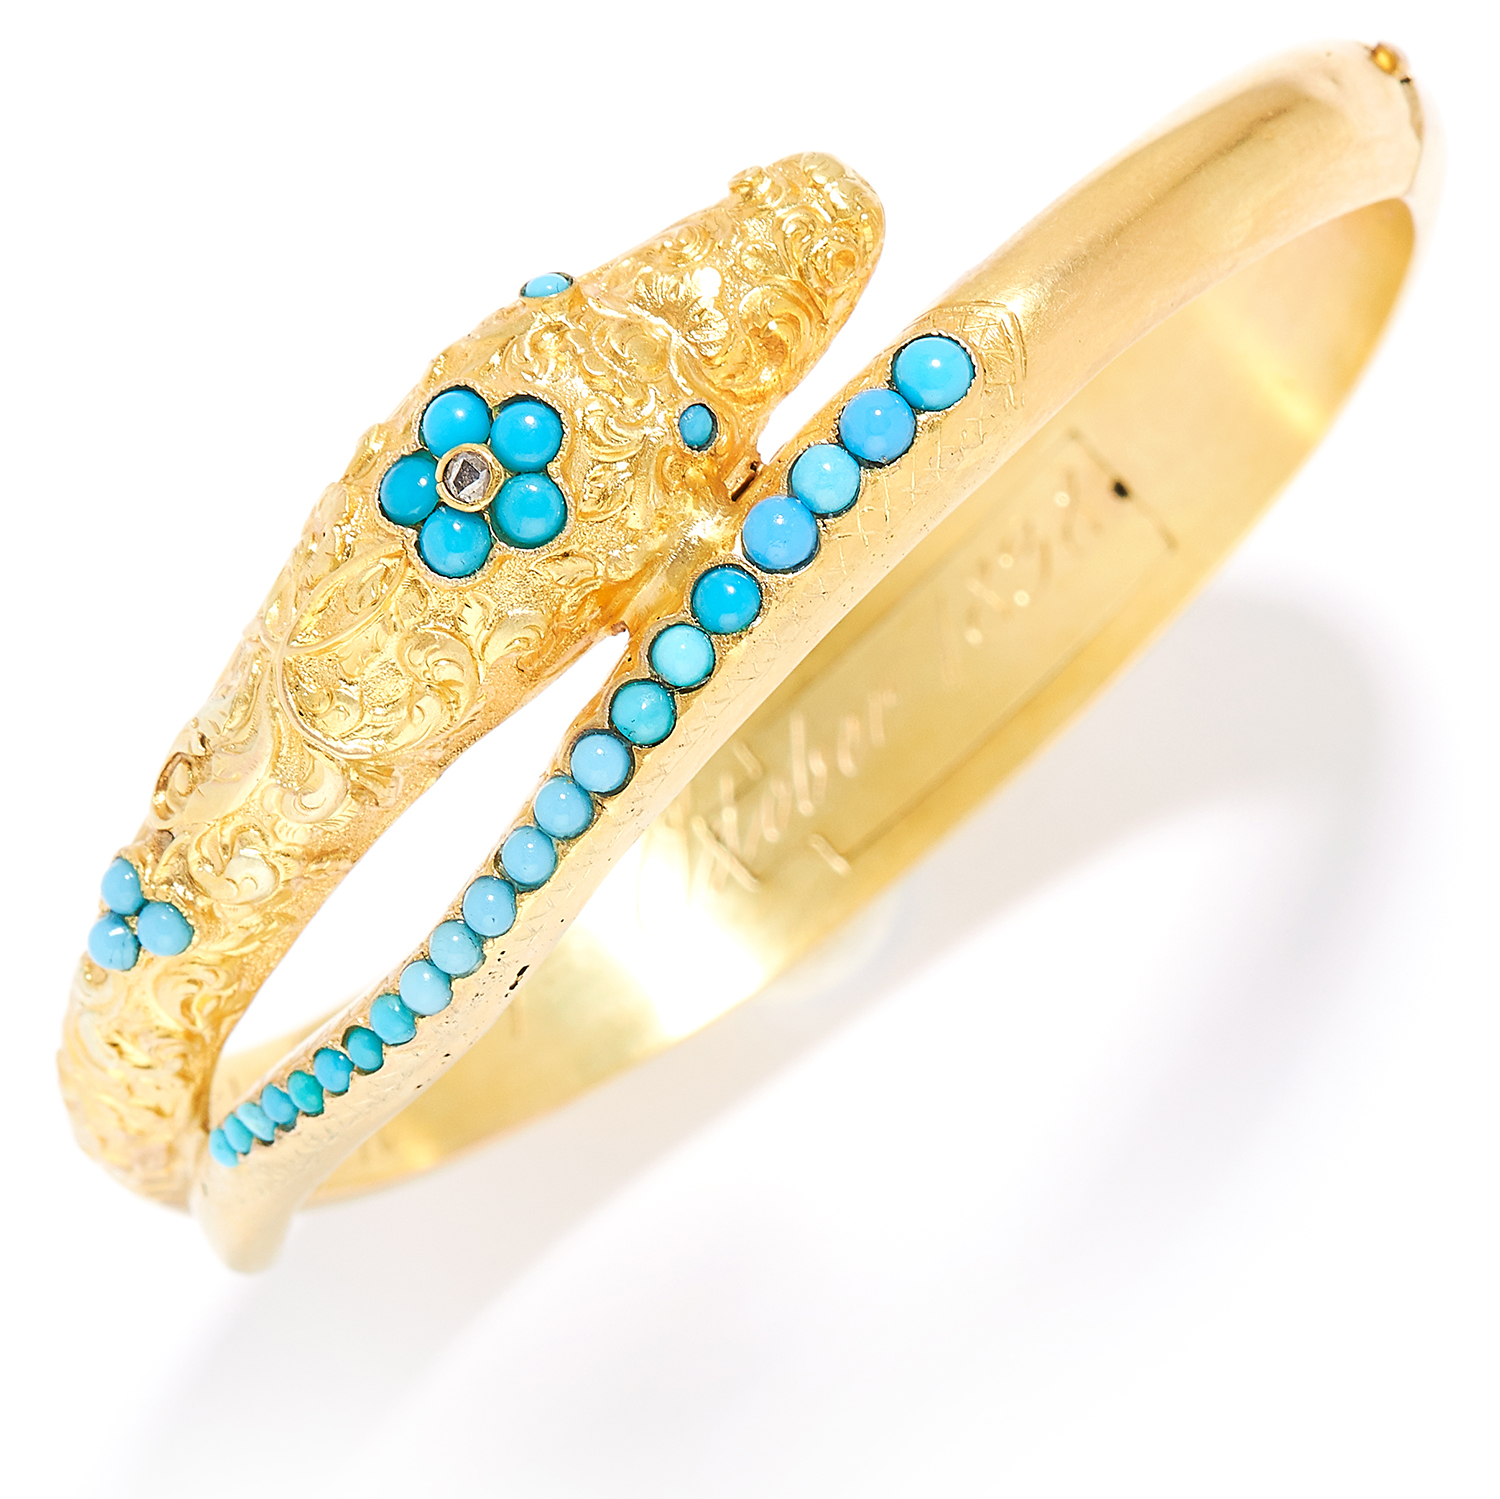 Los 20 - ANTIQUE TURQUOISE AND DIAMOND SERPENT / SNAKE MOURNING BANGLE, 19TH CENTURY in high carat yellow